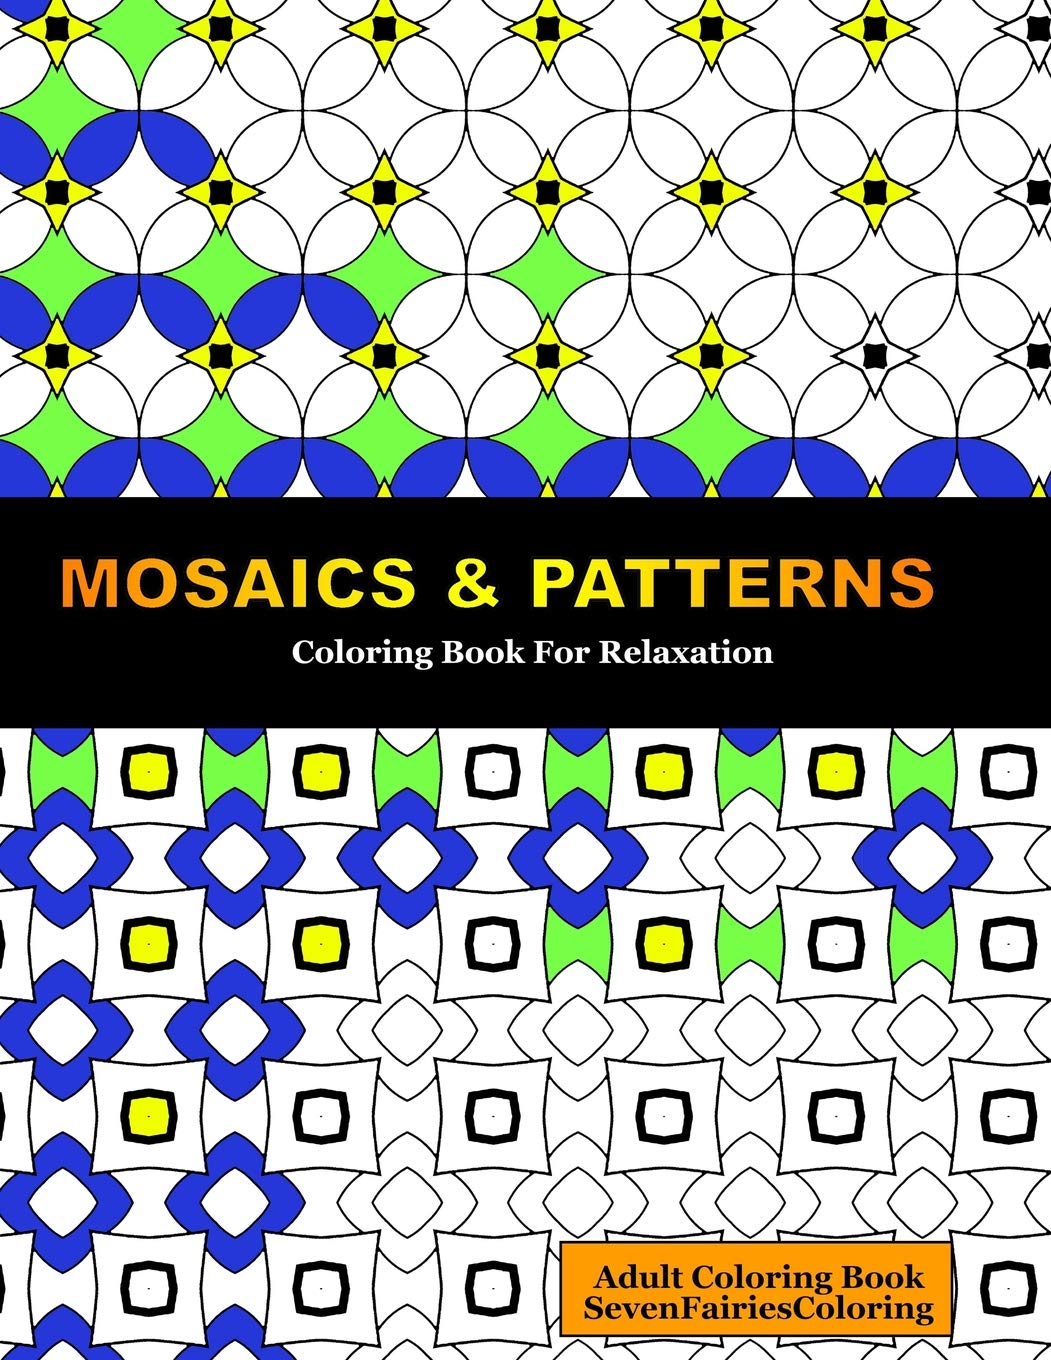 Mosaic Coloring Pages For Kids - Coloring Home | 1360x1051